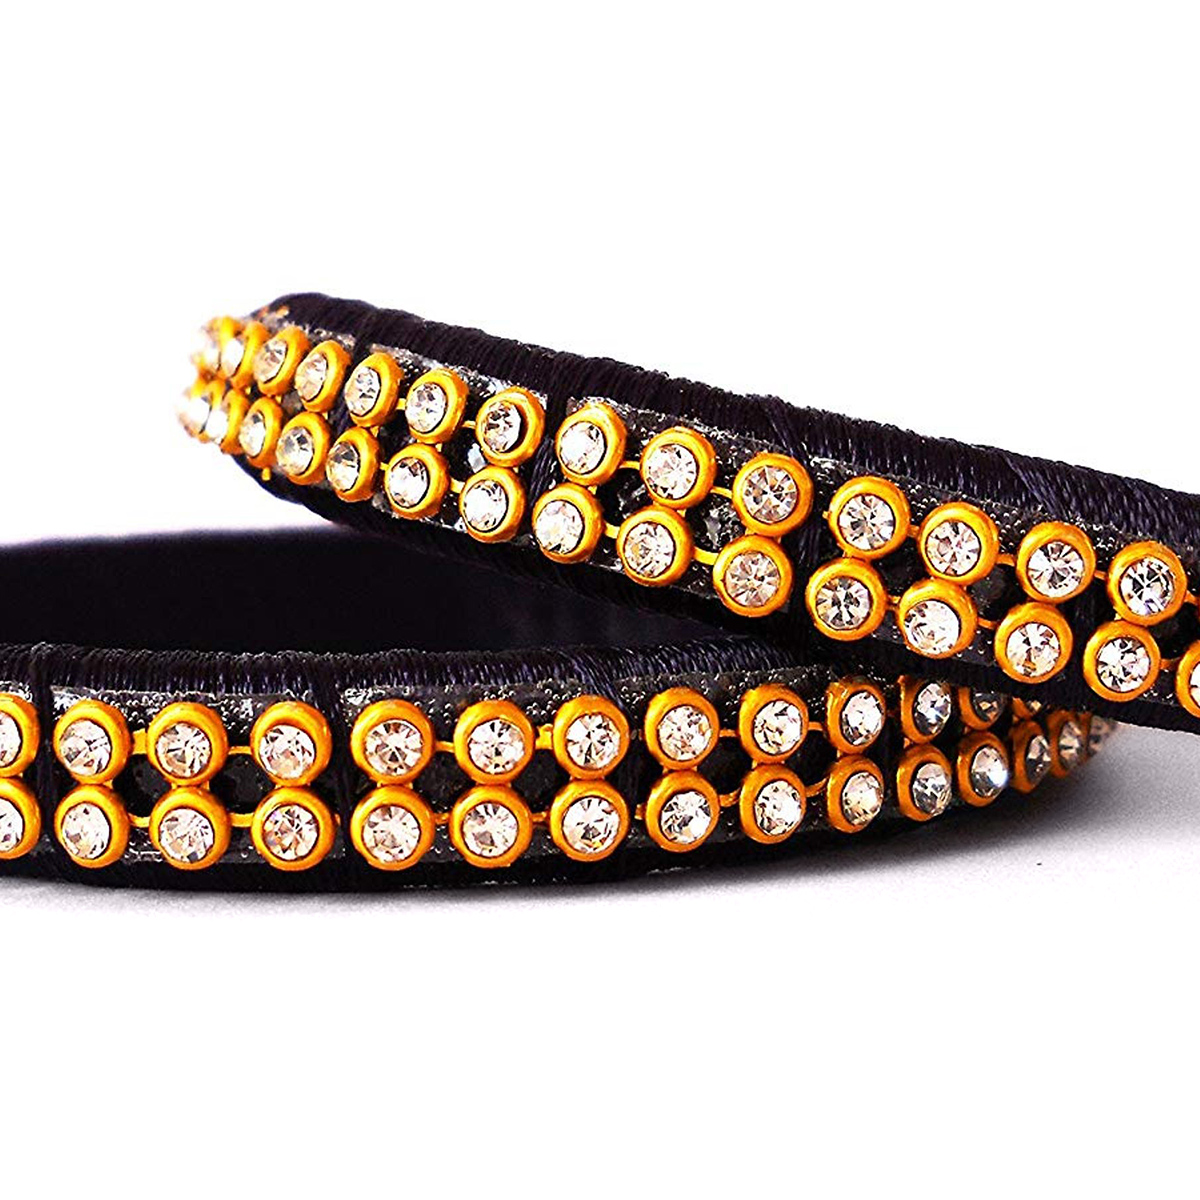 Exceptional Black Colored Festive Wear Stone Work Resham Thread Bangles